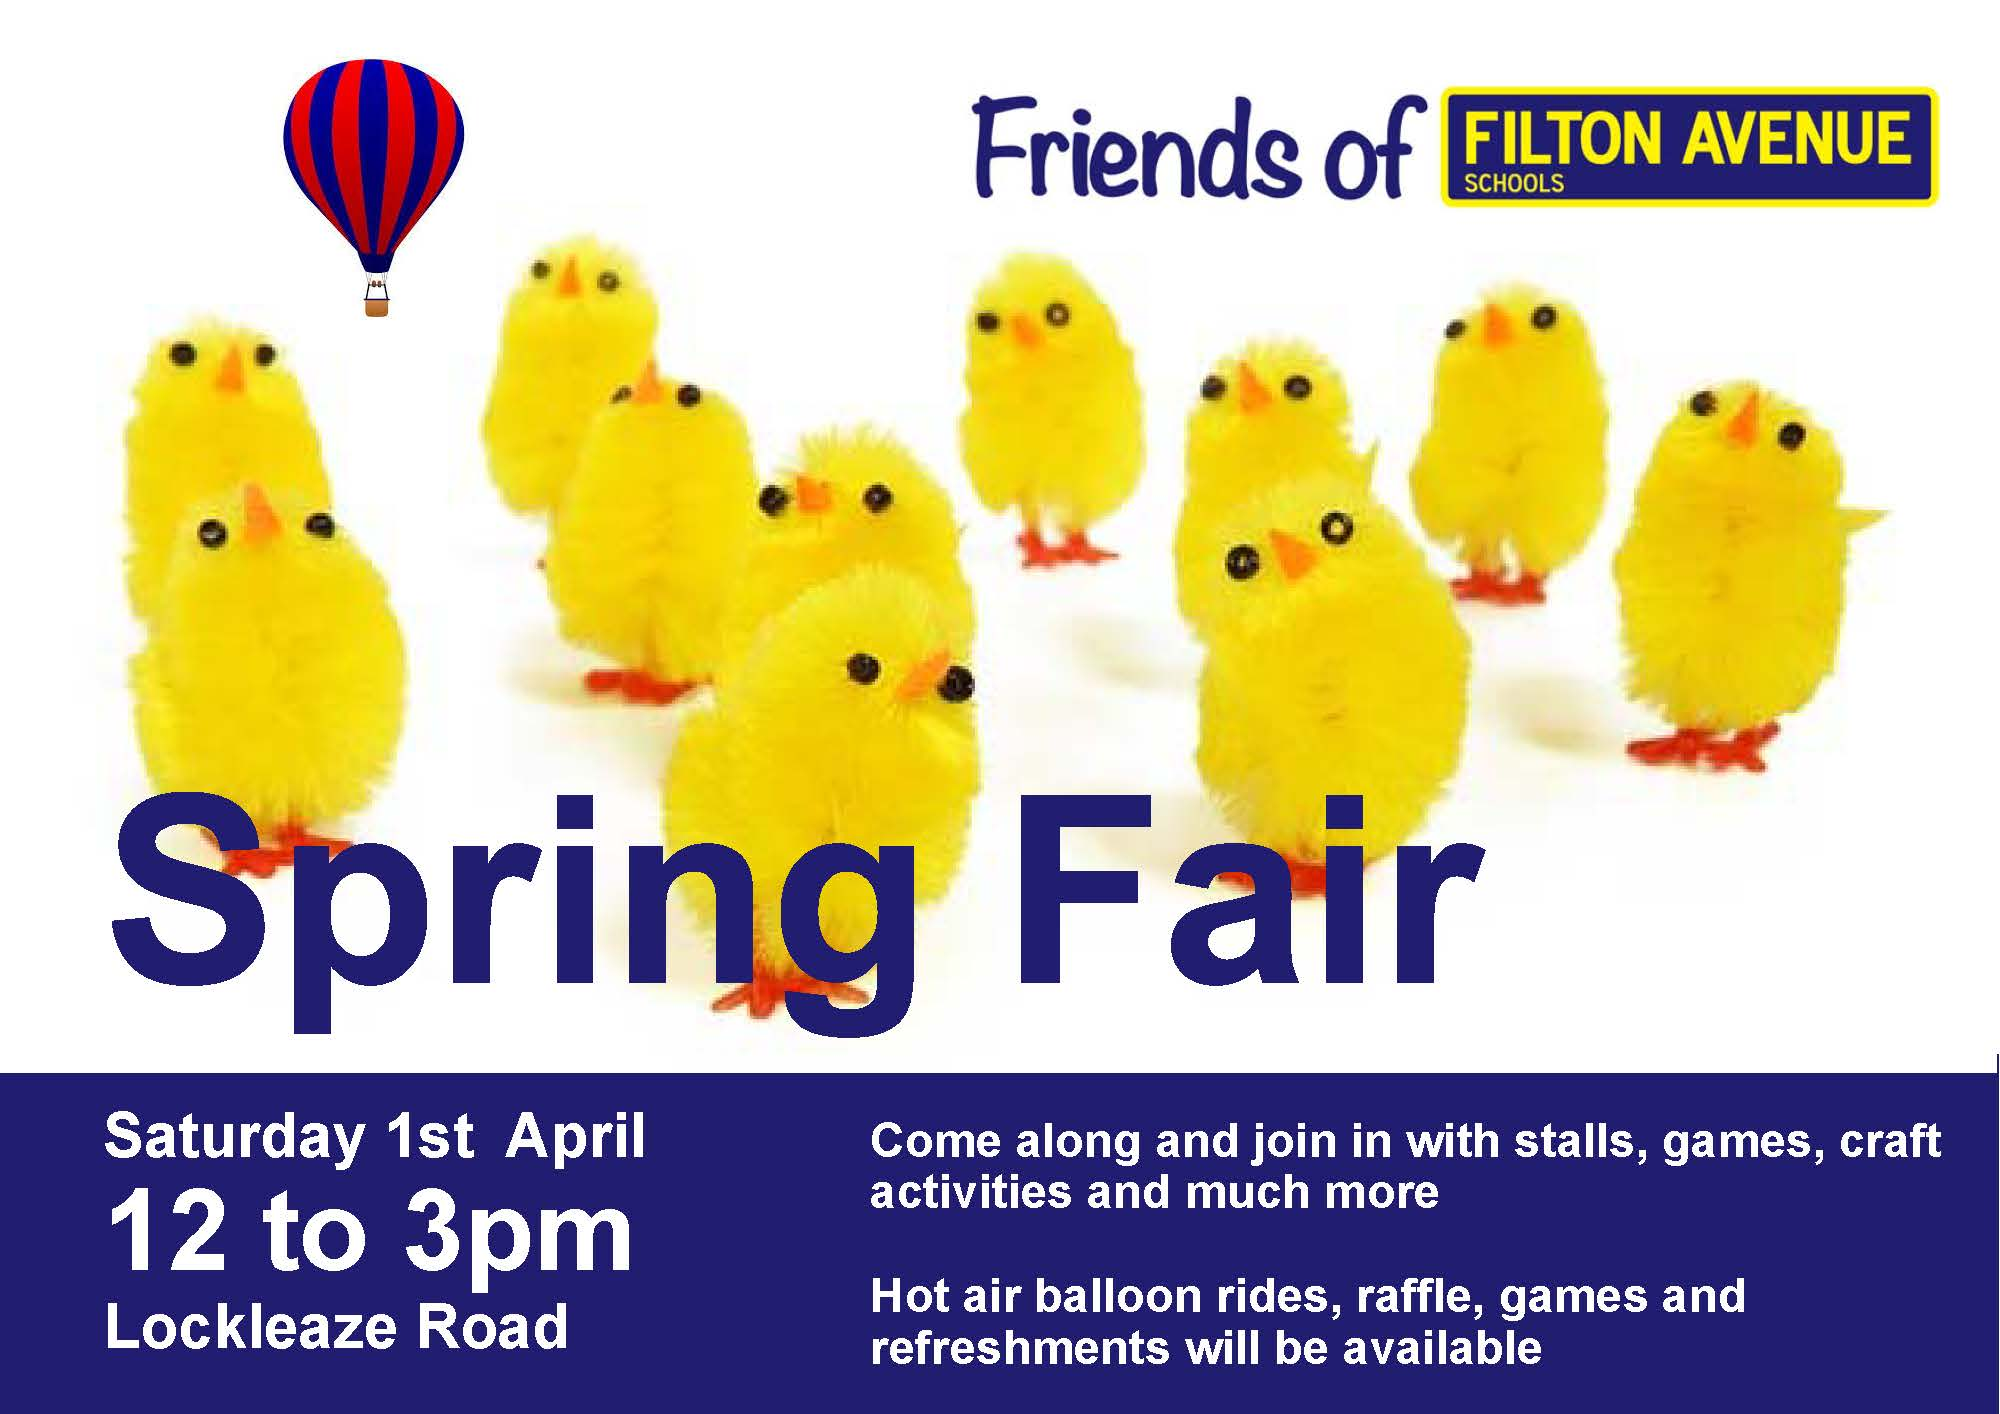 FFA Spring Fair Banner 3 - FFA Spring Fair Saturday 1st April 2017 at Lockleaze Road